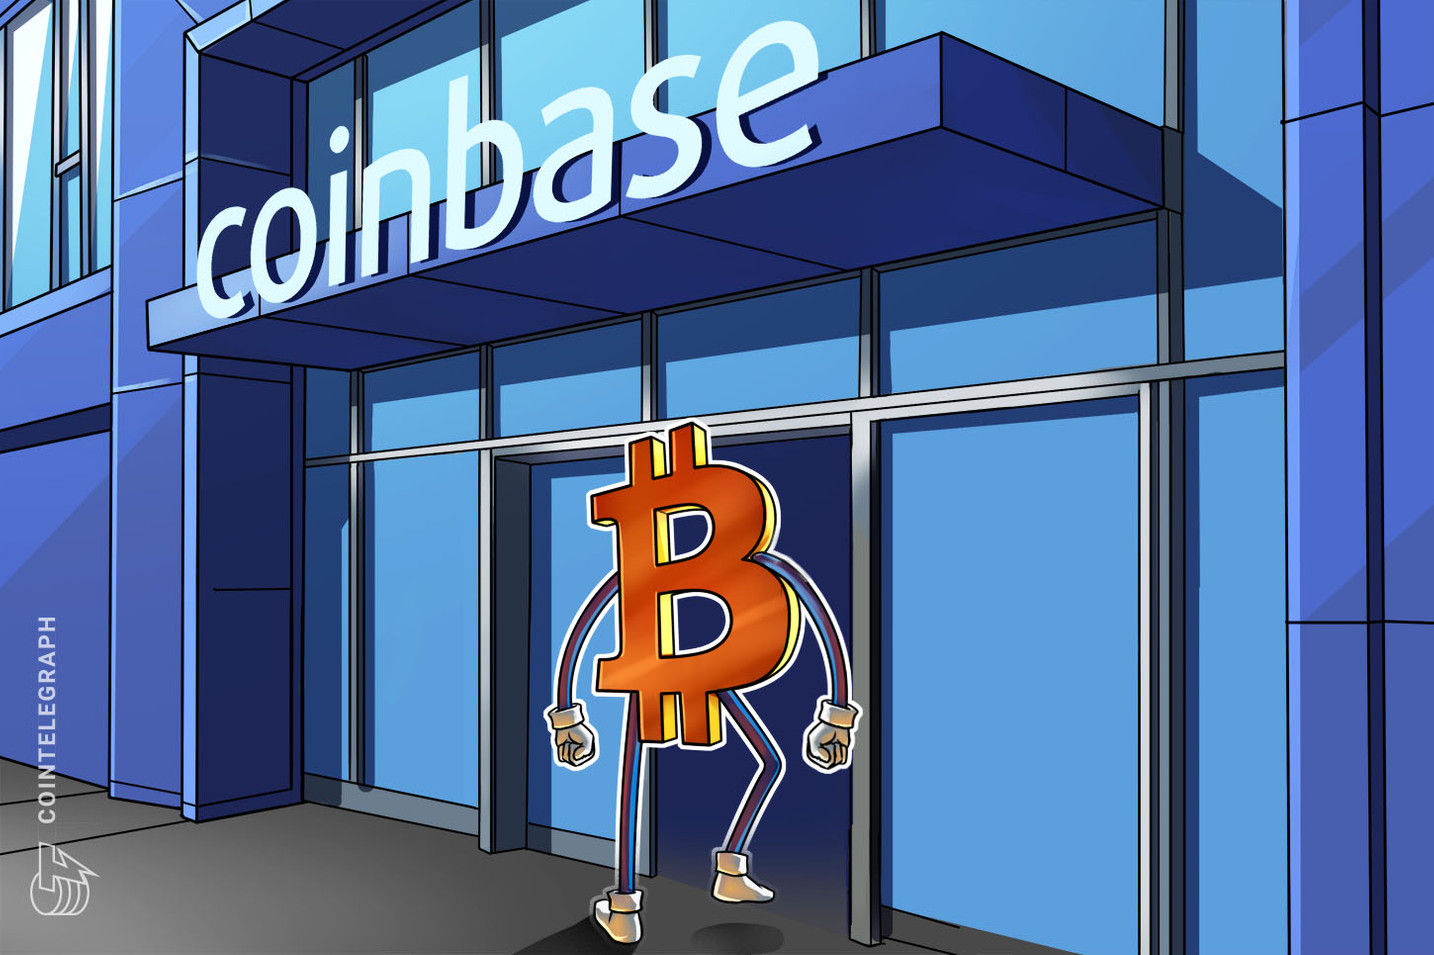 Coinbase executed MicroStrategy's $425M Bitcoin purchase in September 2020